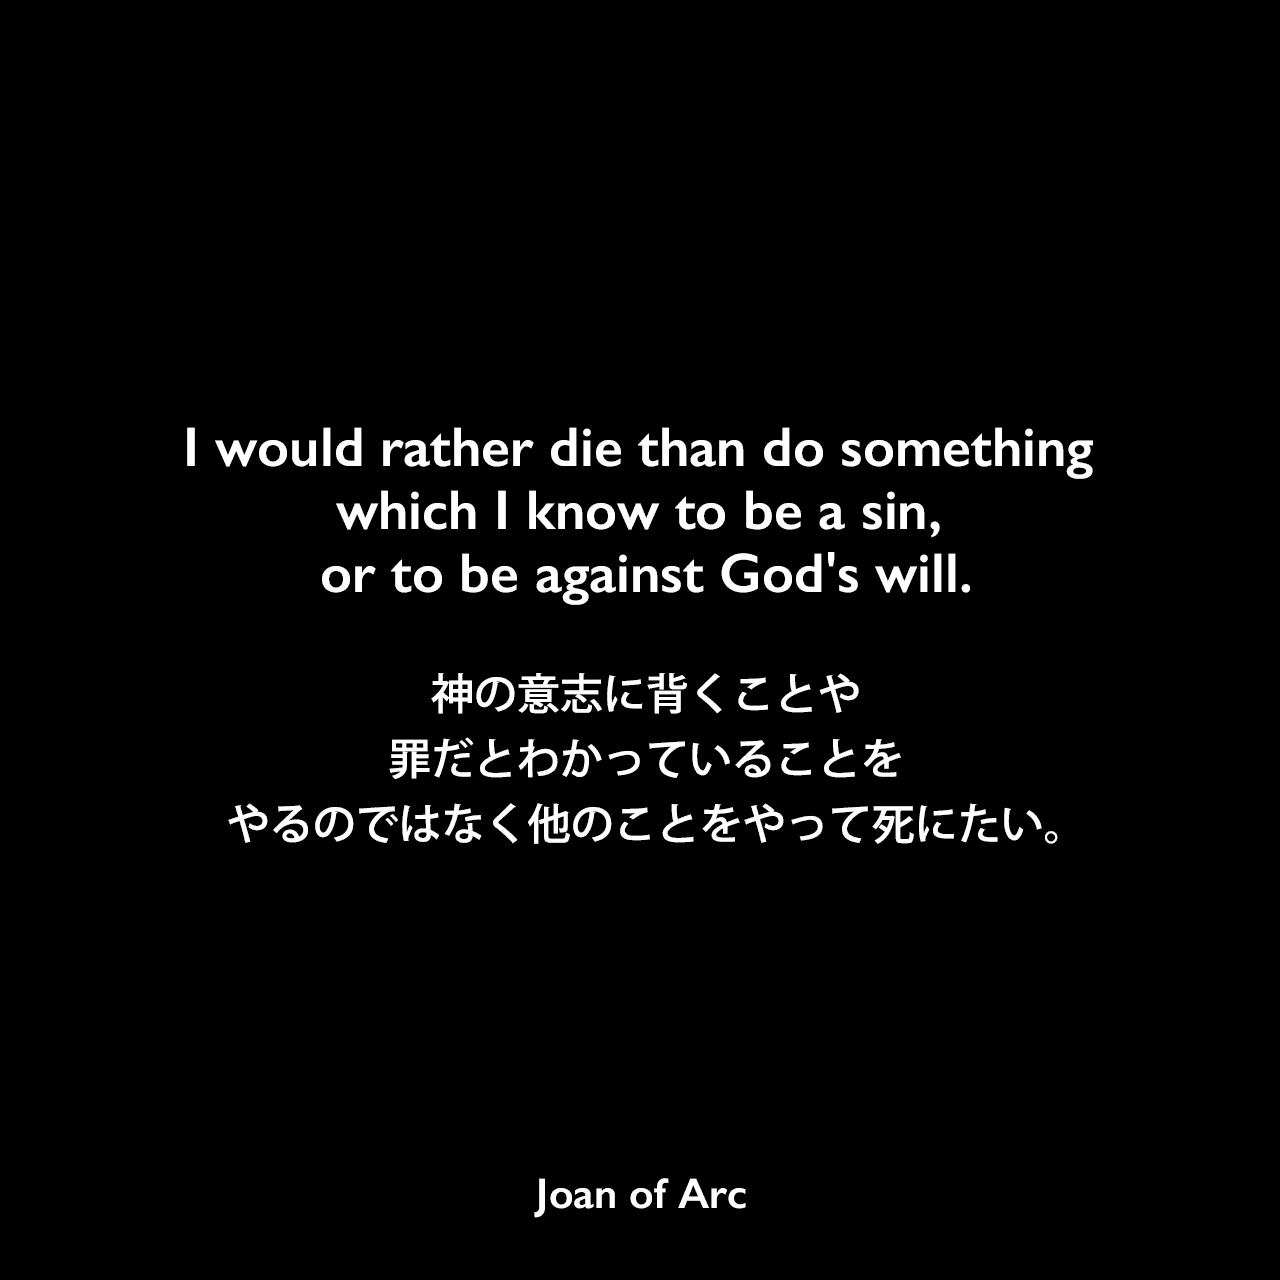 I would rather die than do something which I know to be a sin, or to be against God's will.神の意志に背くことや罪だとわかっていることをやるのではなく他のことをやって死にたい。Joan of Arc